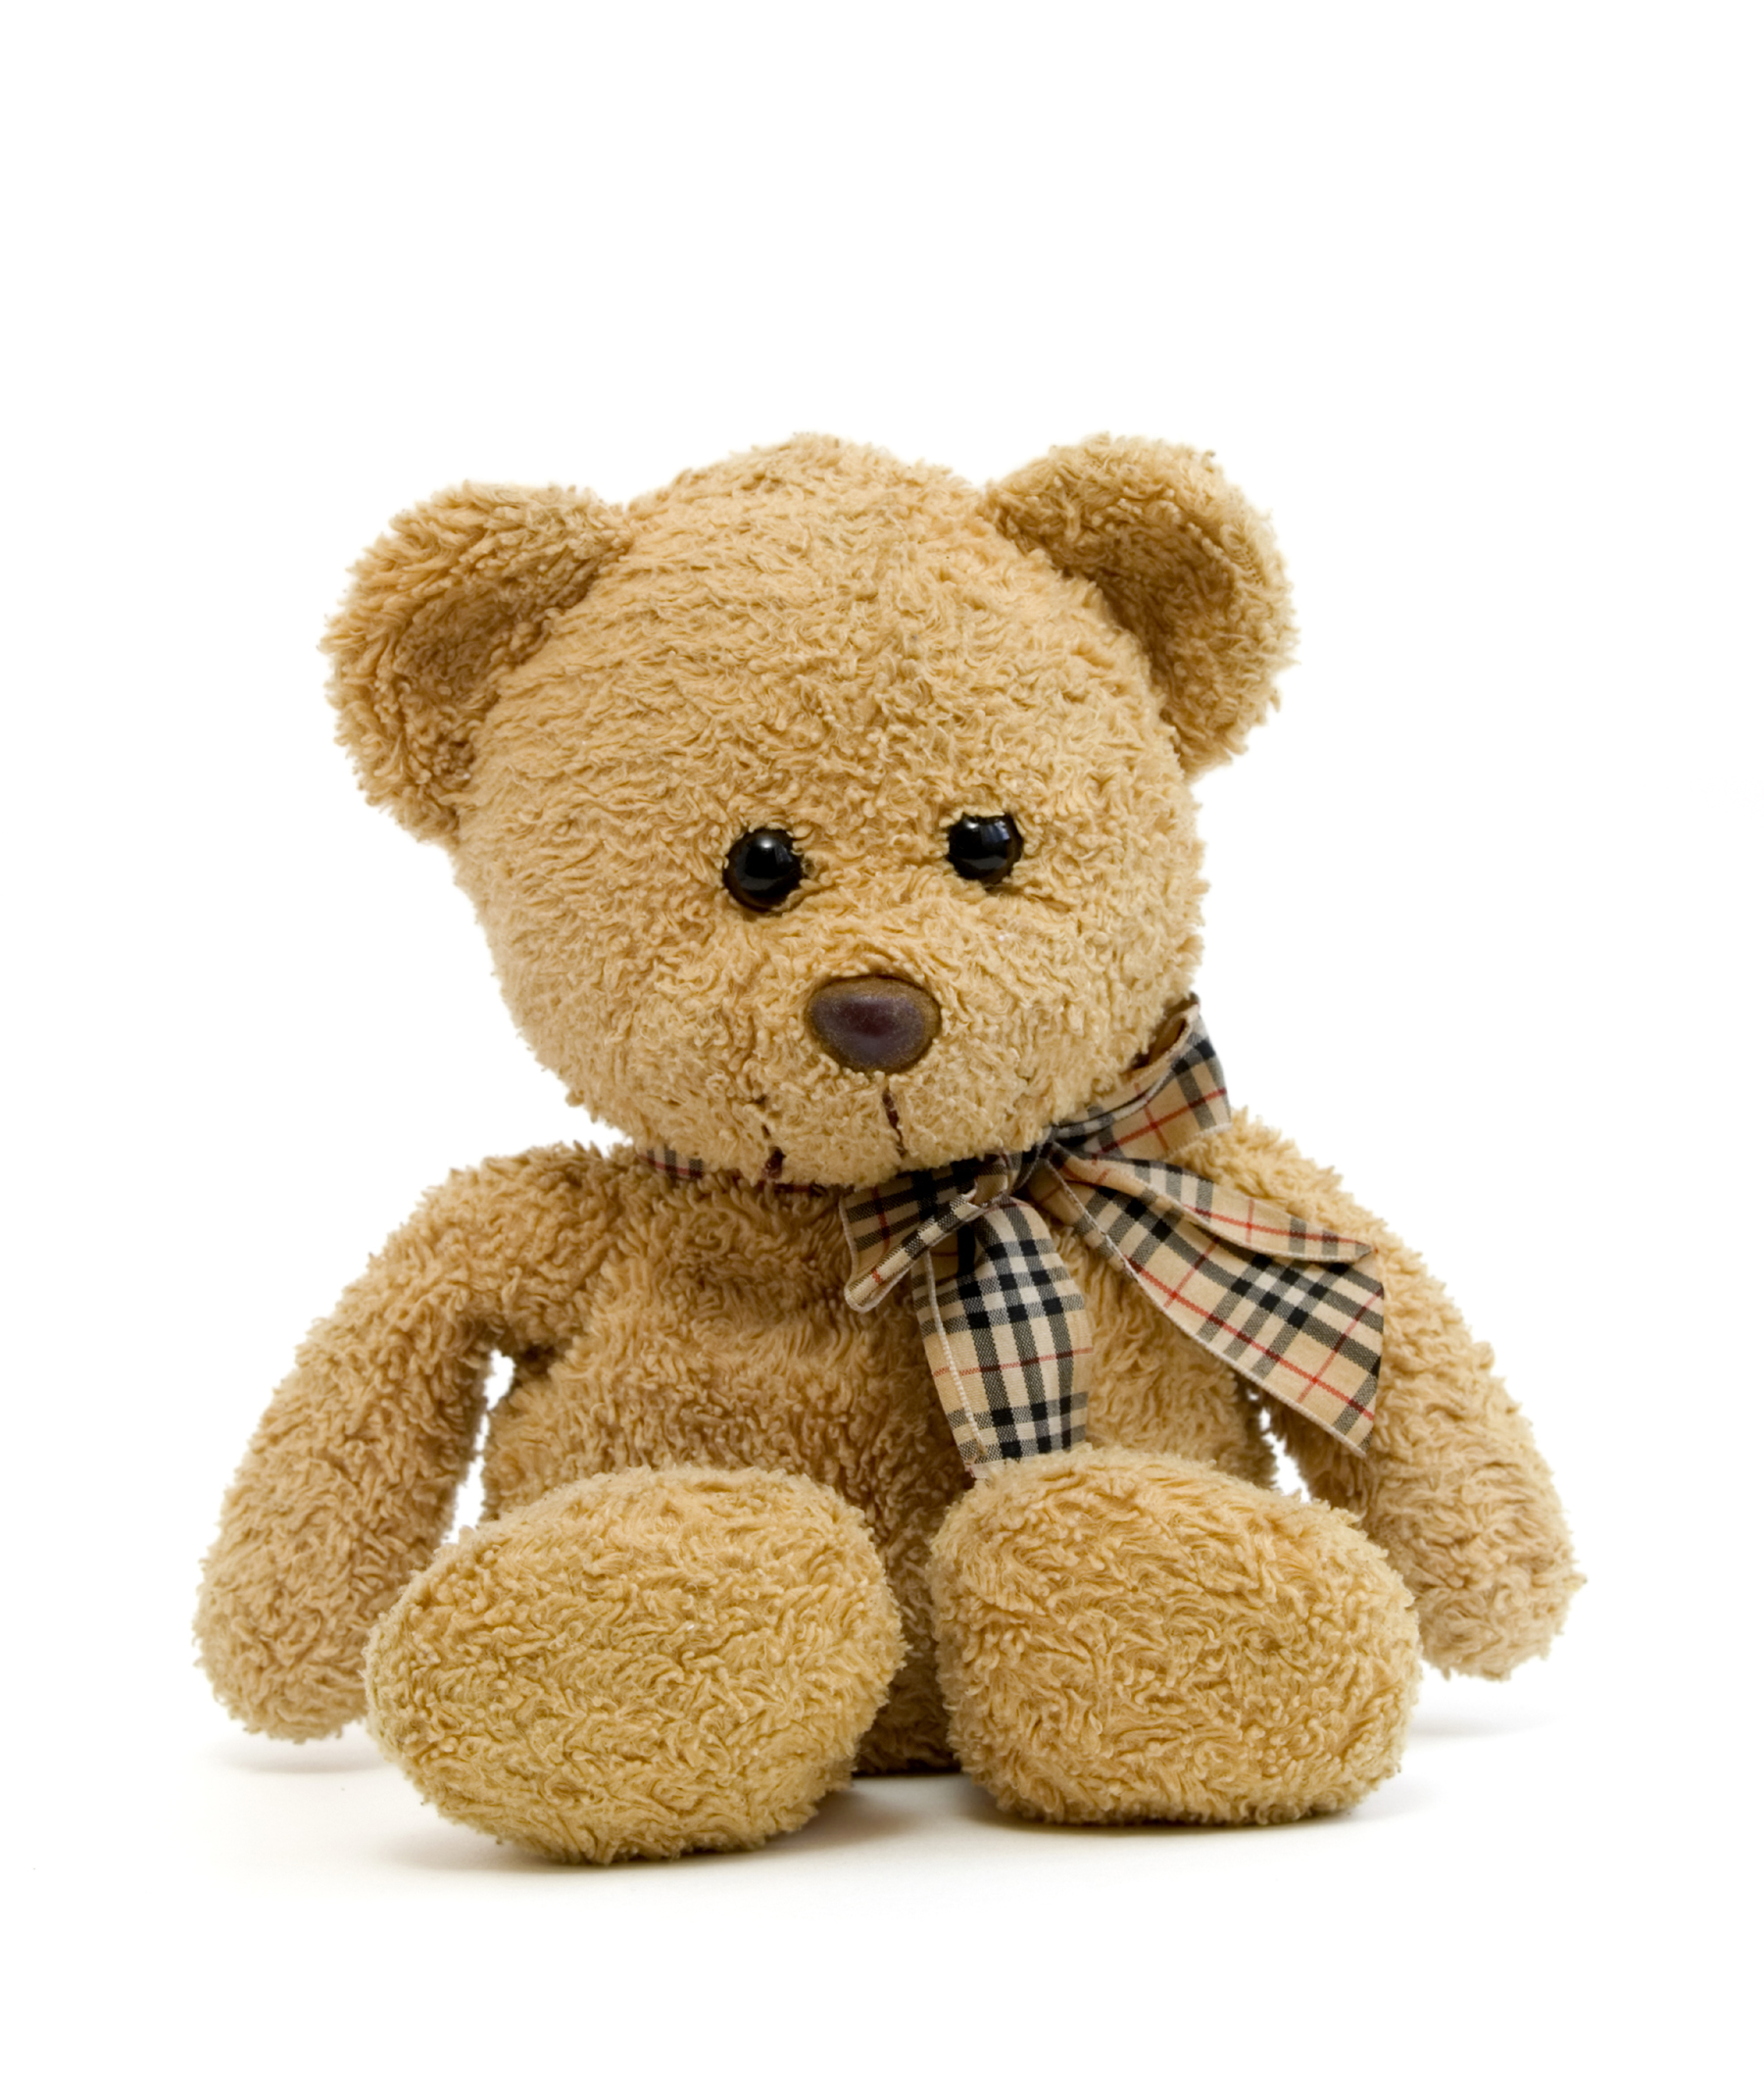 Teddy bear 52577